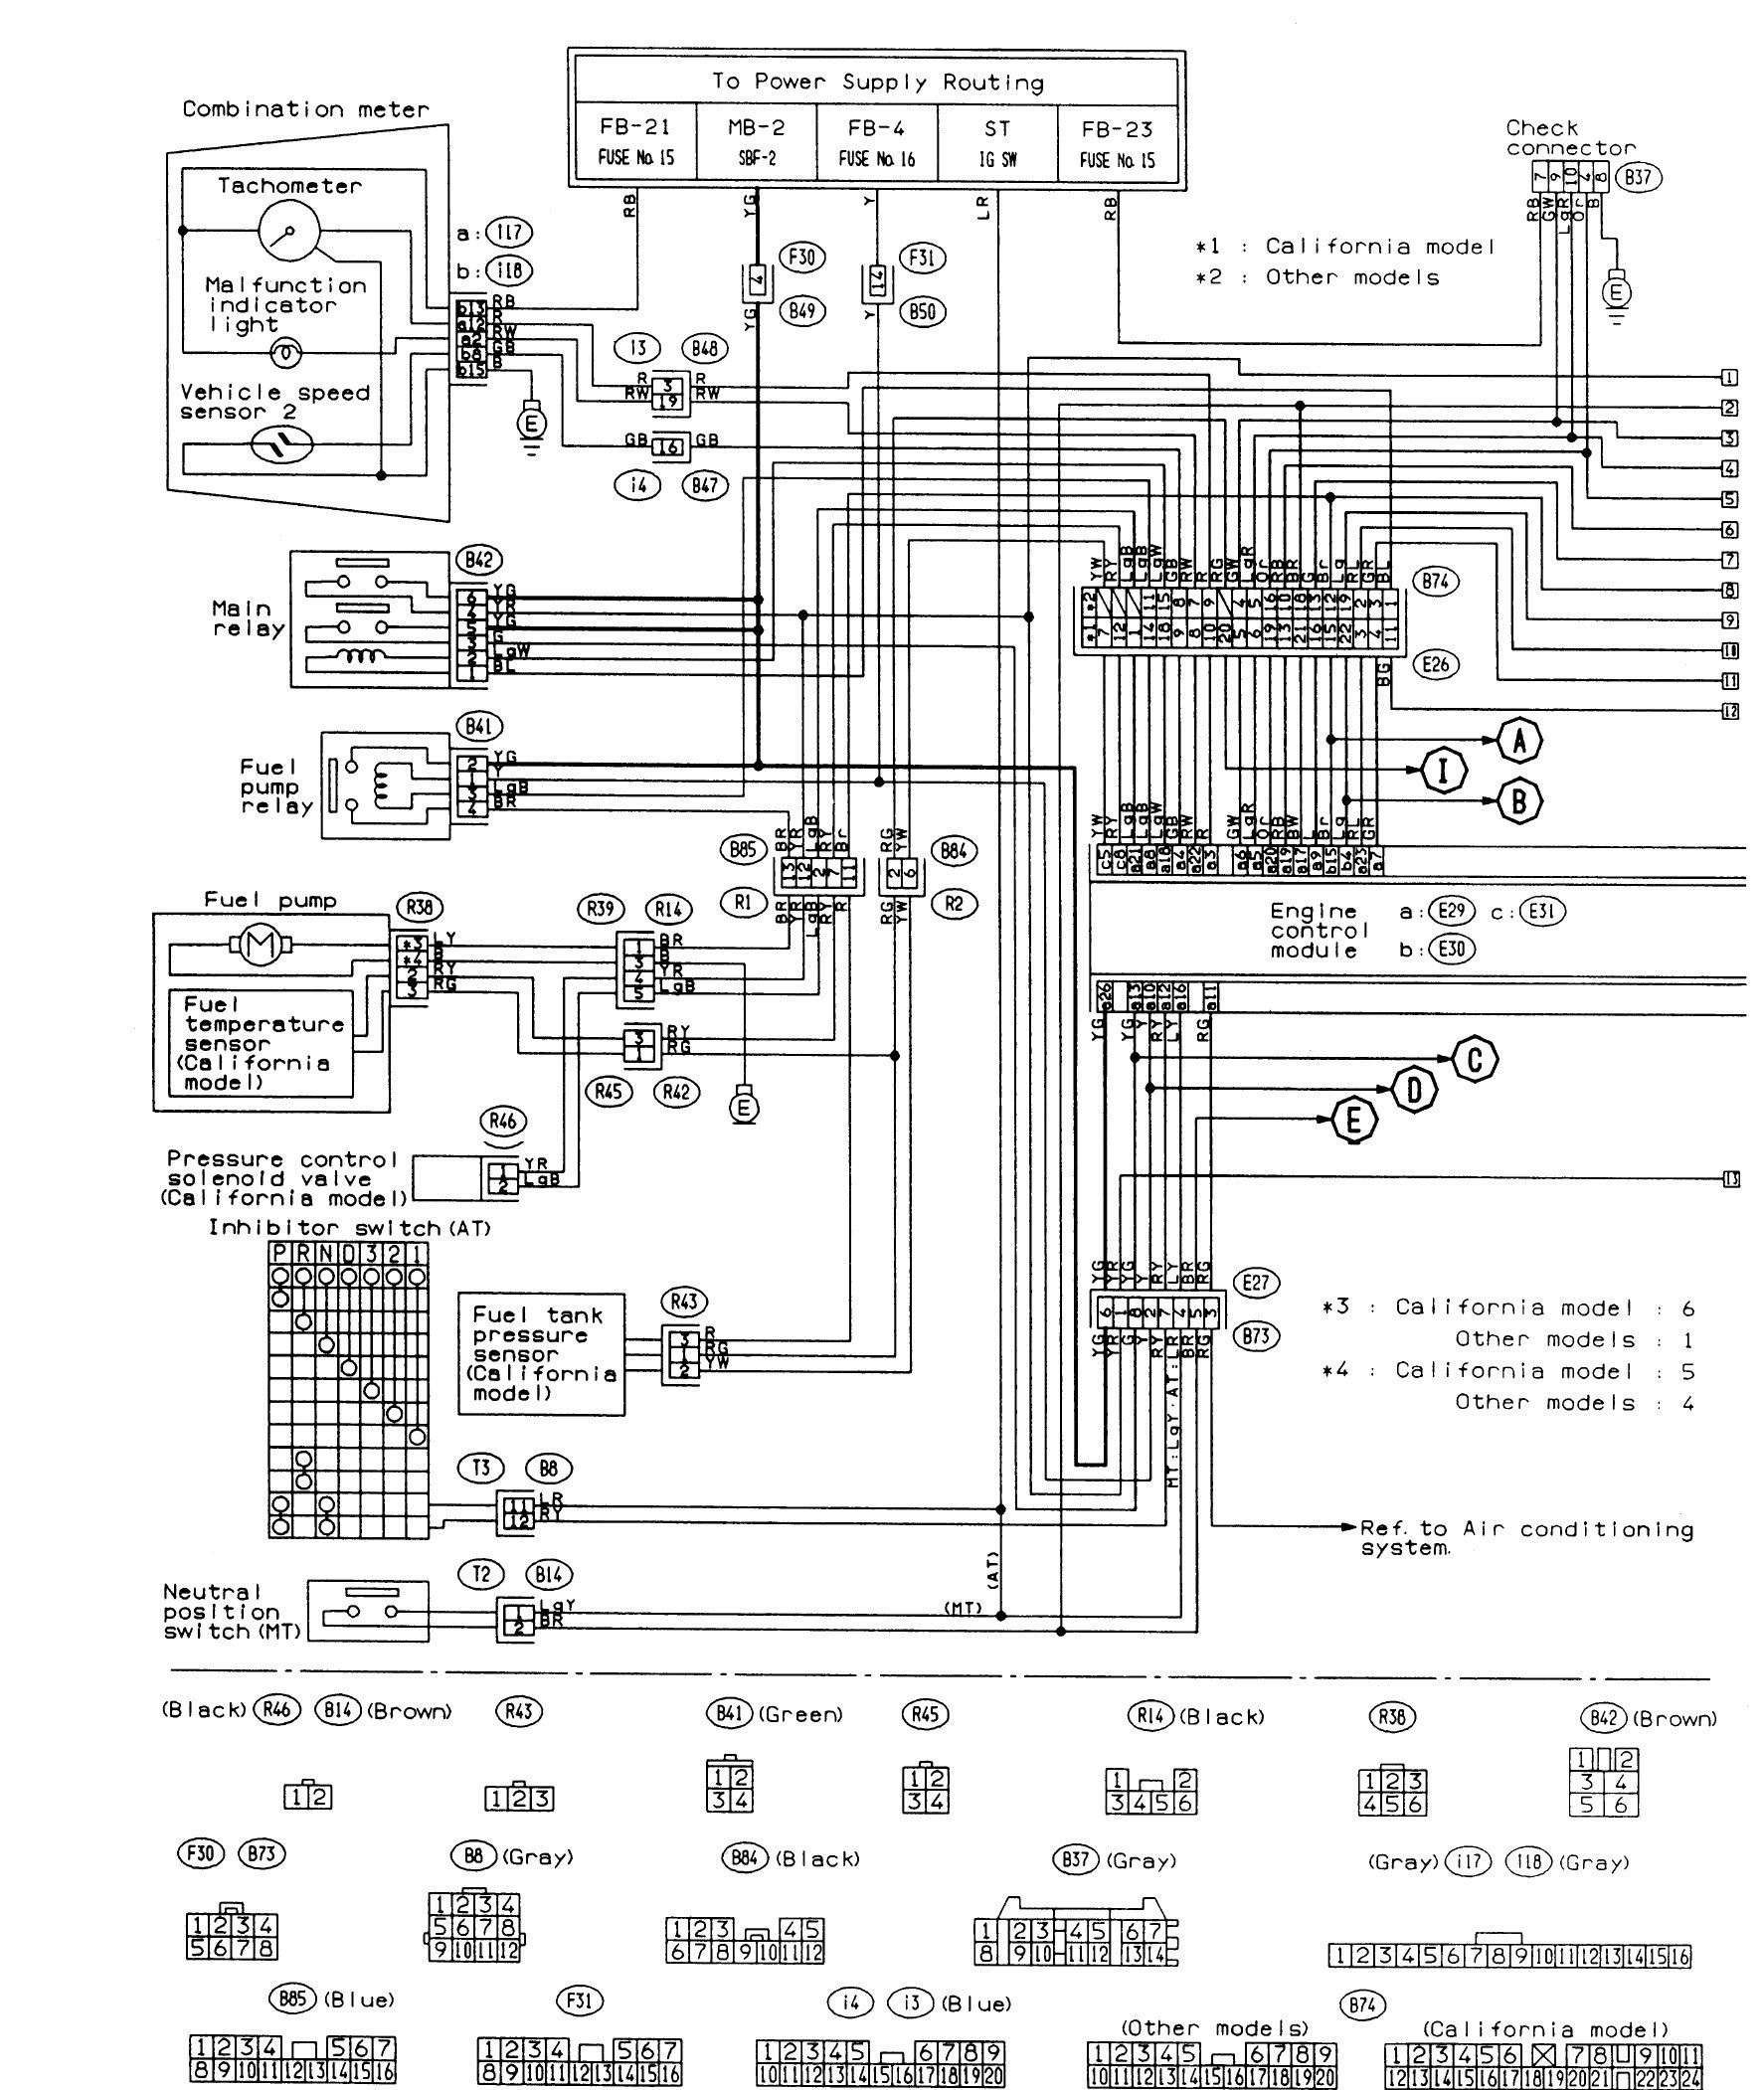 subaru wiring diagram color codes | electrical diagram, subaru, subaru  impreza  pinterest